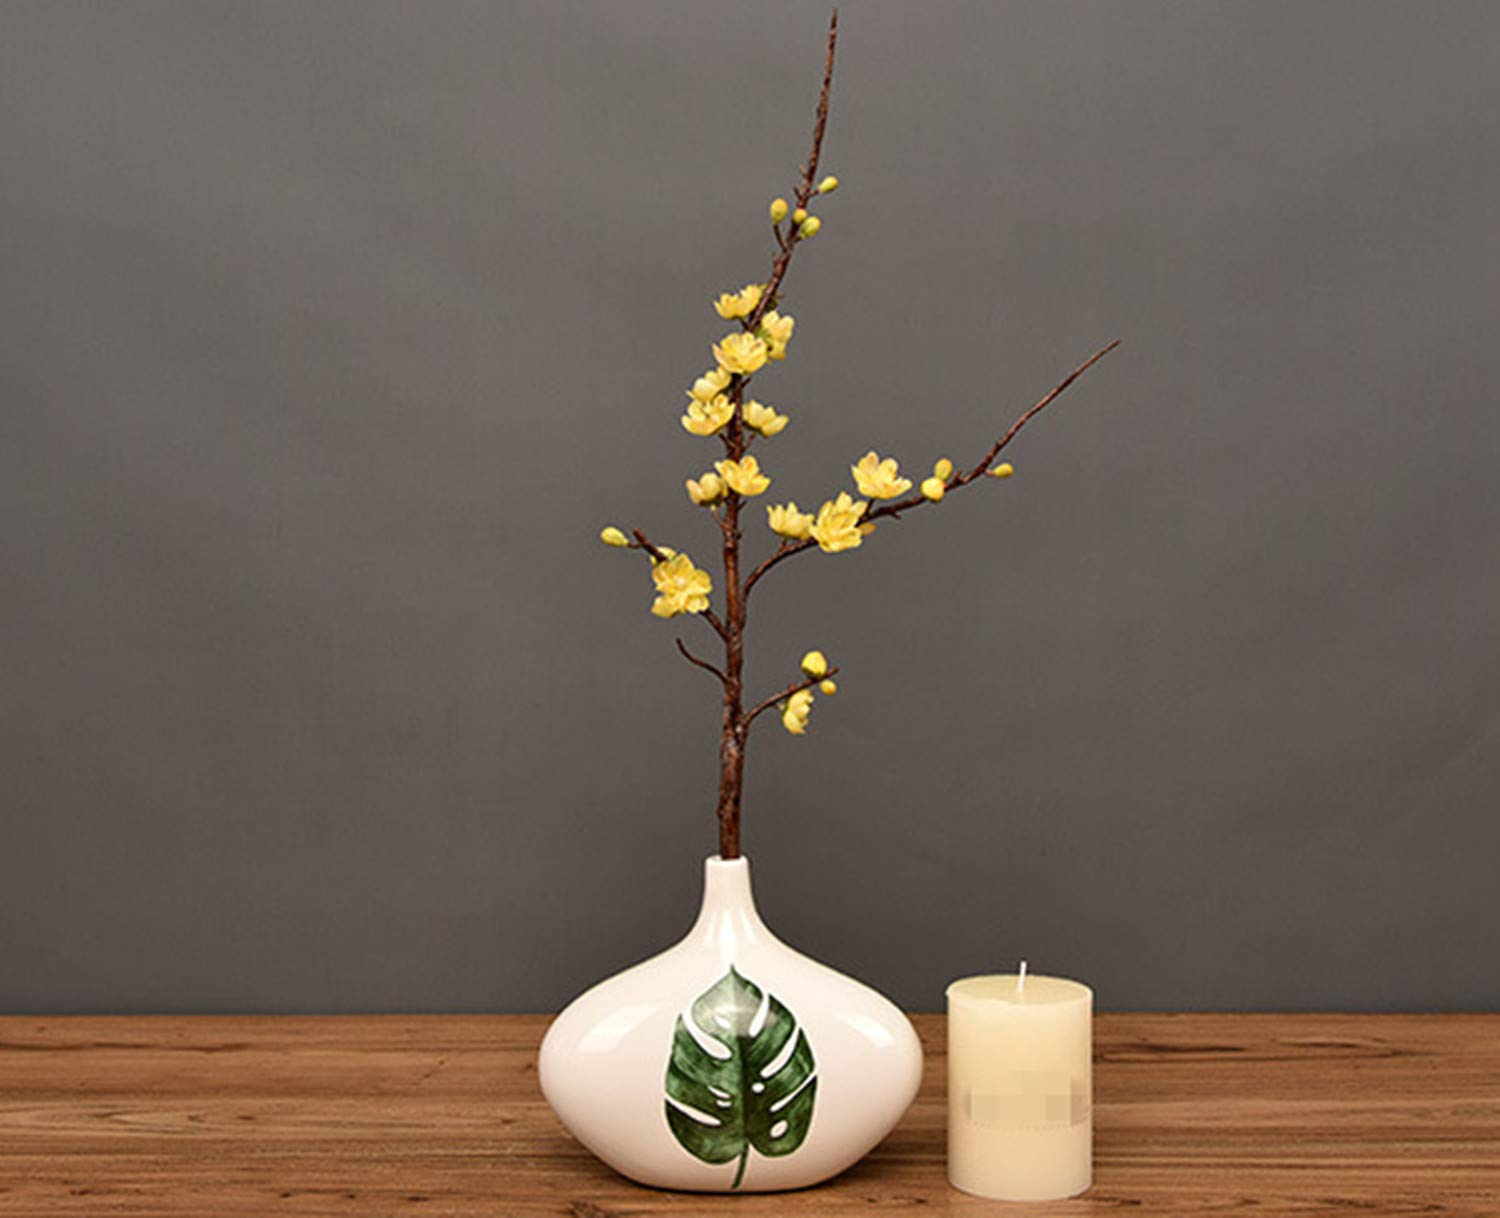 Skyseen-3Pcs-Artificial-Plum-Blossom-Branches-Flowers-Stems-Silk-Fake-Wintersweet-Arrangements-for-Home-Wedding-DecorationYellow